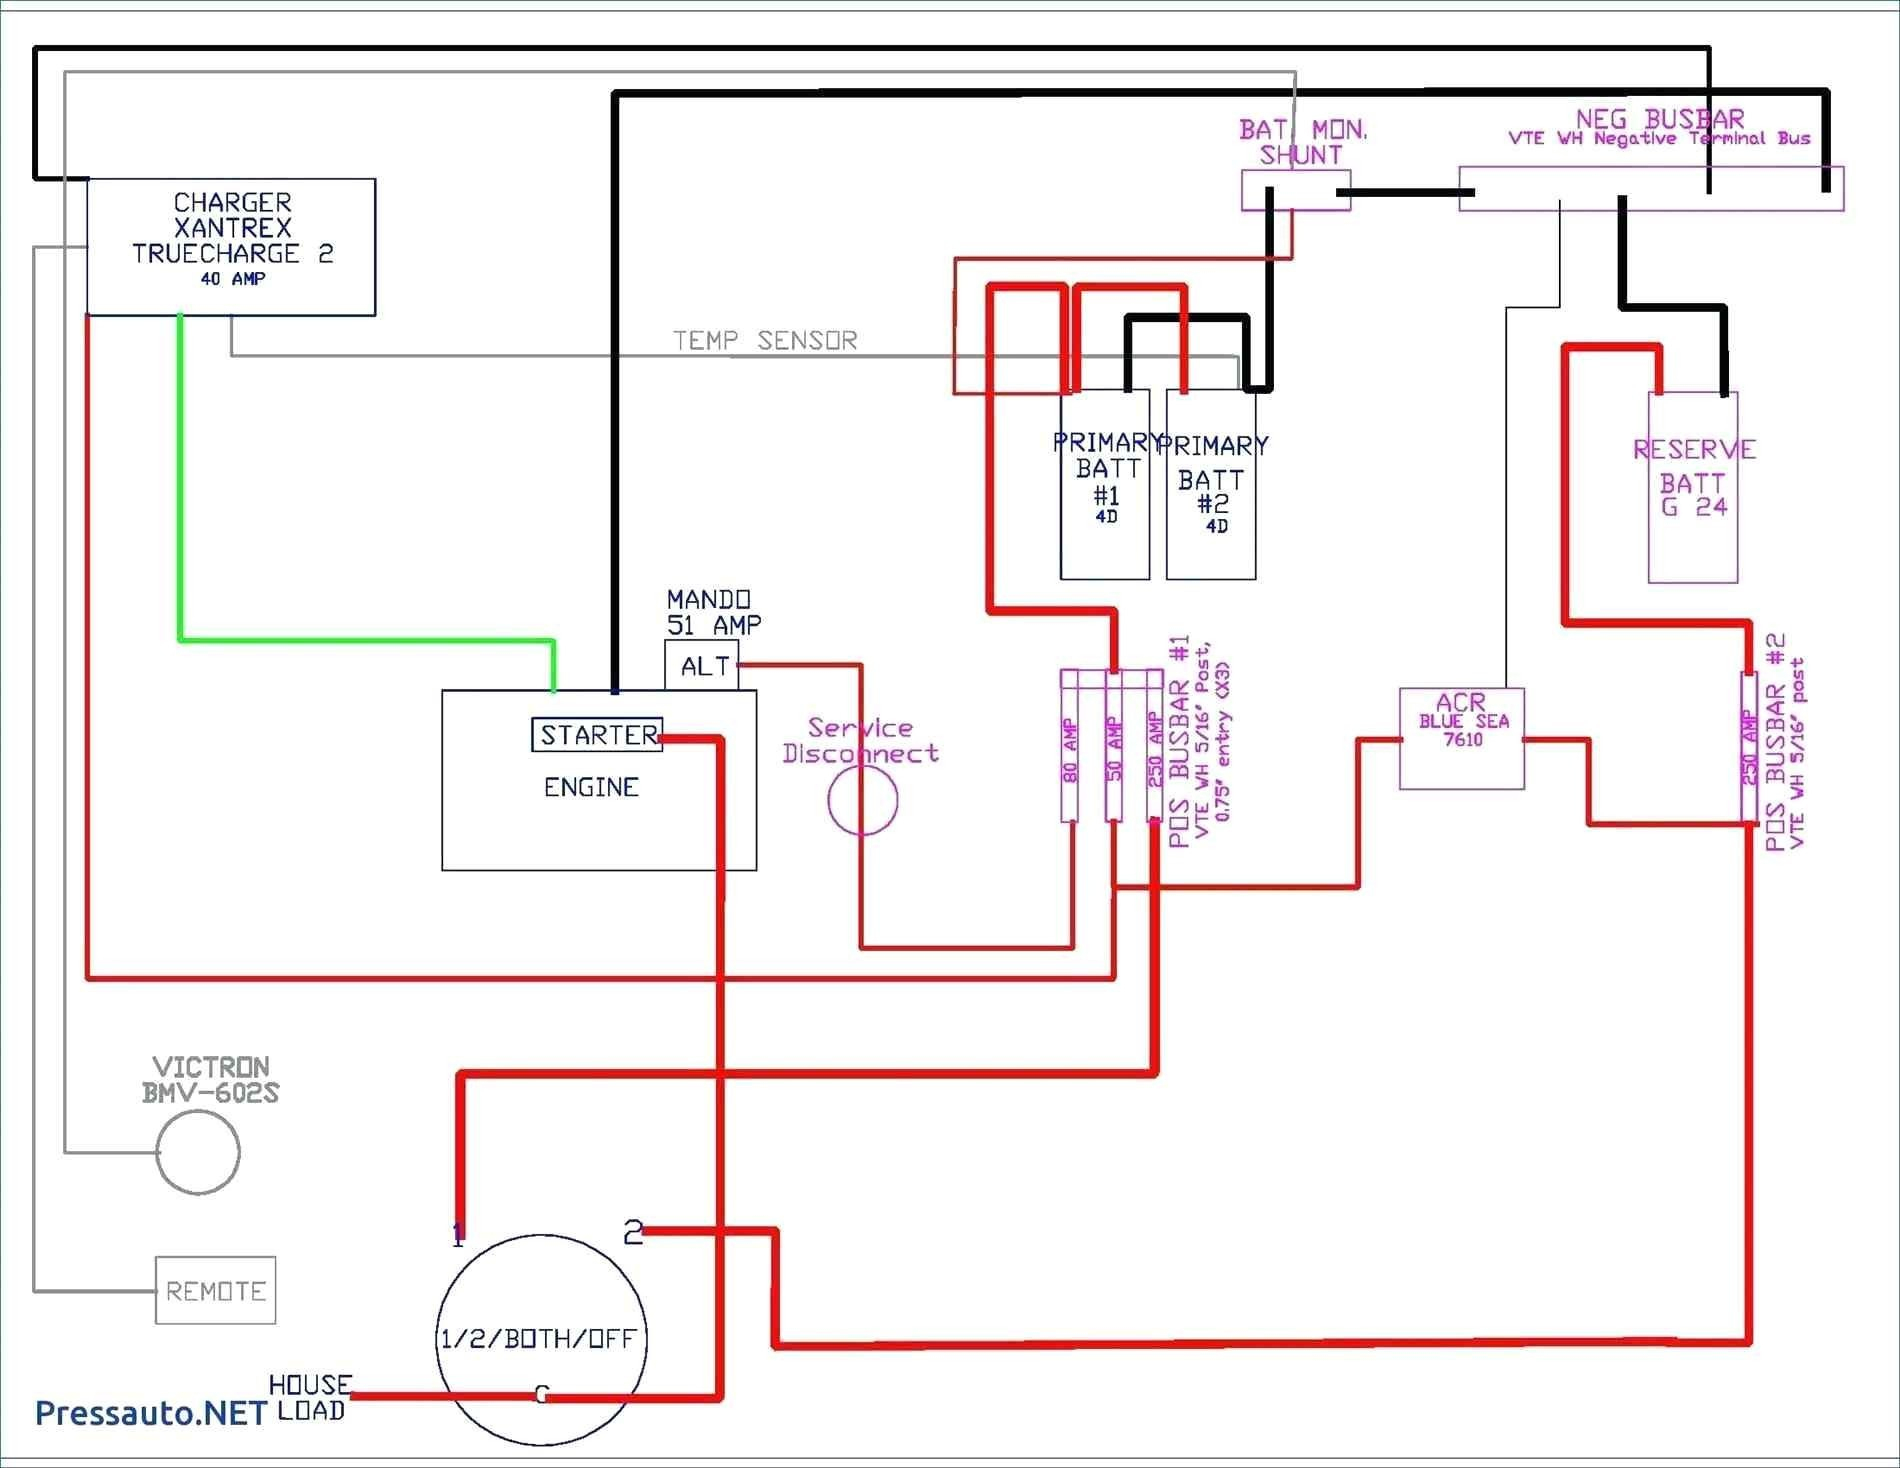 House Wiring Diagram - Schema Wiring Diagram - Basic House Wiring Diagram